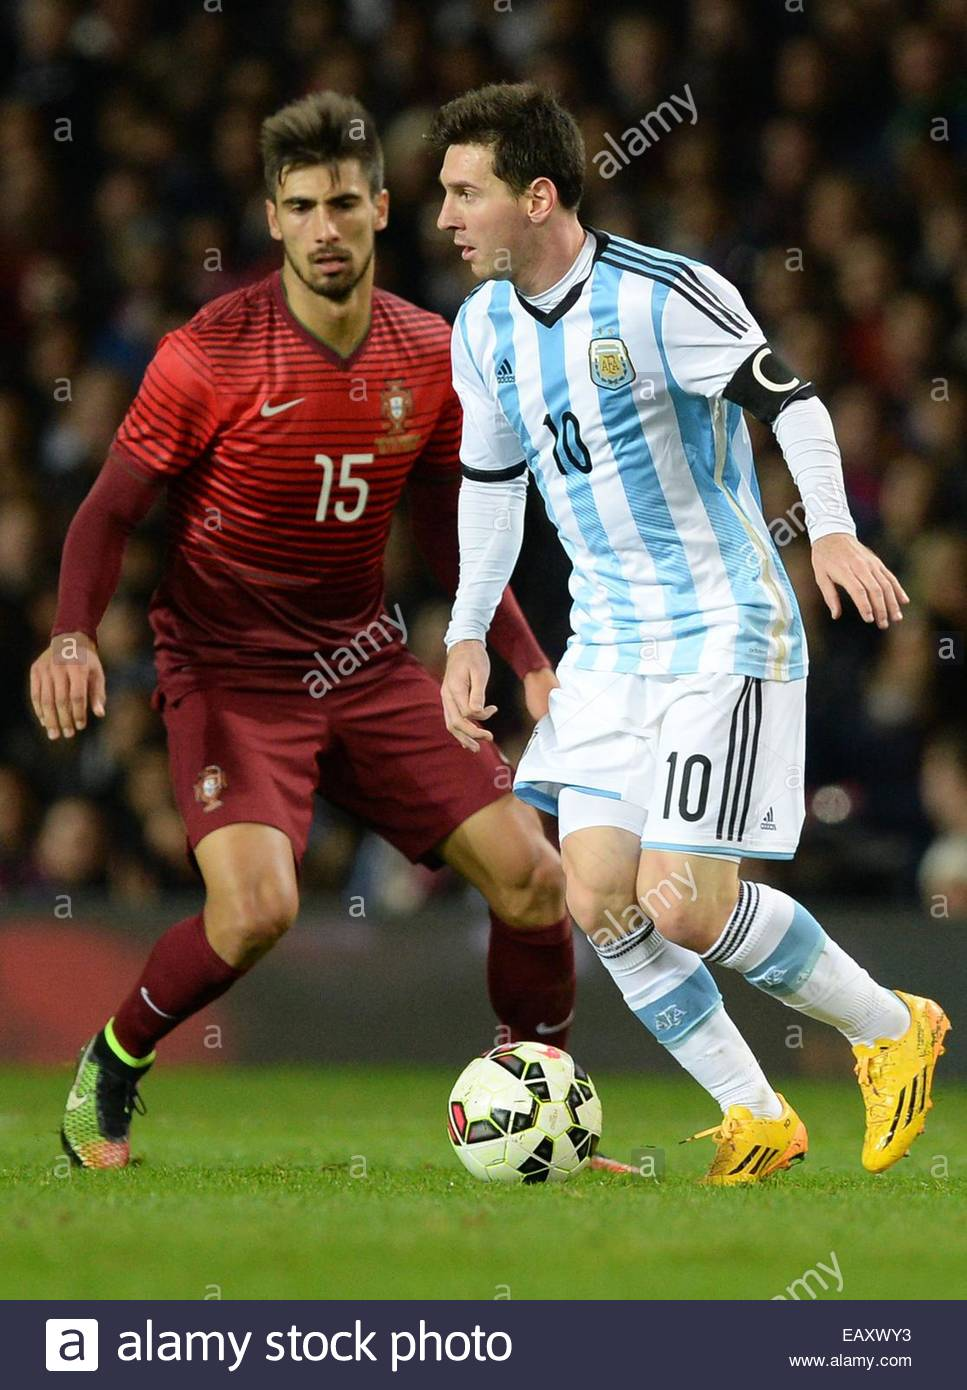 http://c8.alamy.com/comp/EAXWY3/epa04494978-argentinas-lionel-messi-r-goes-past-portugals-andre-gomes-EAXWY3.jpg